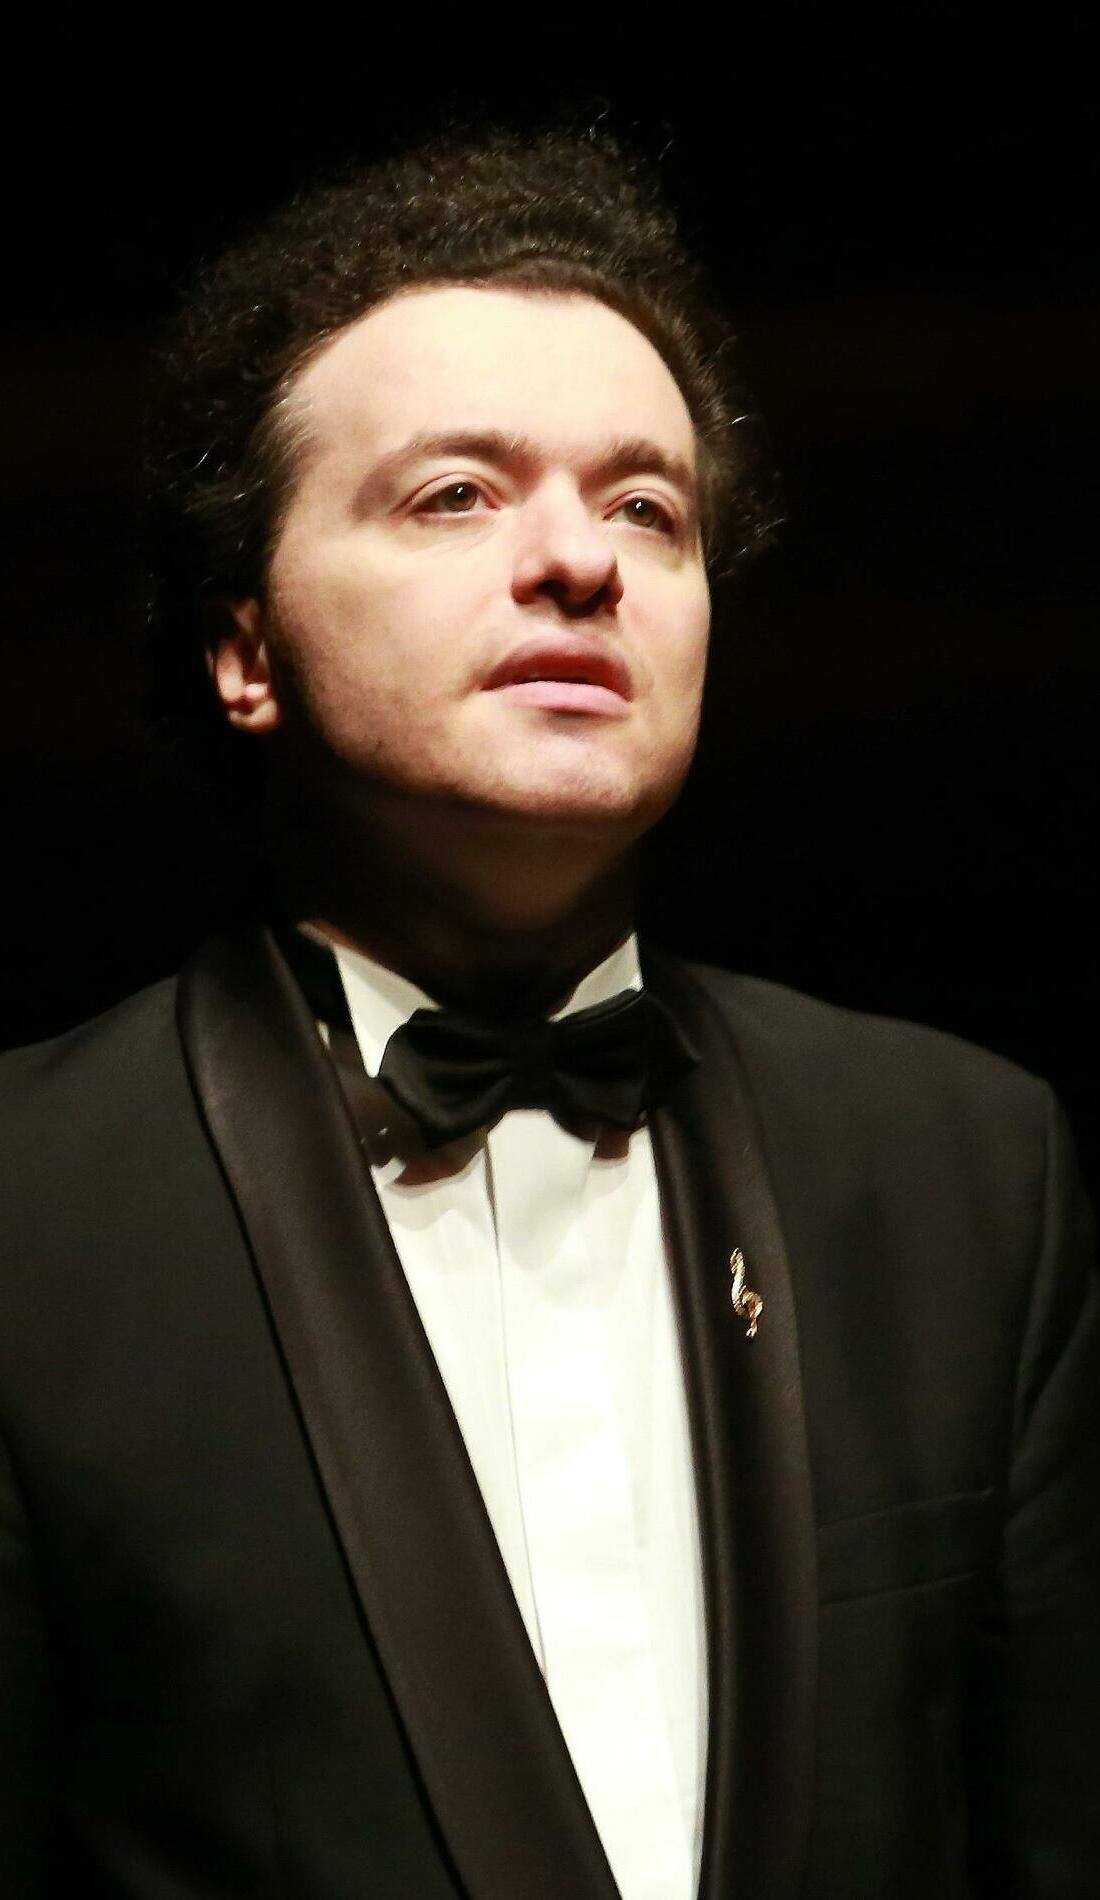 A Evgeny Kissin live event